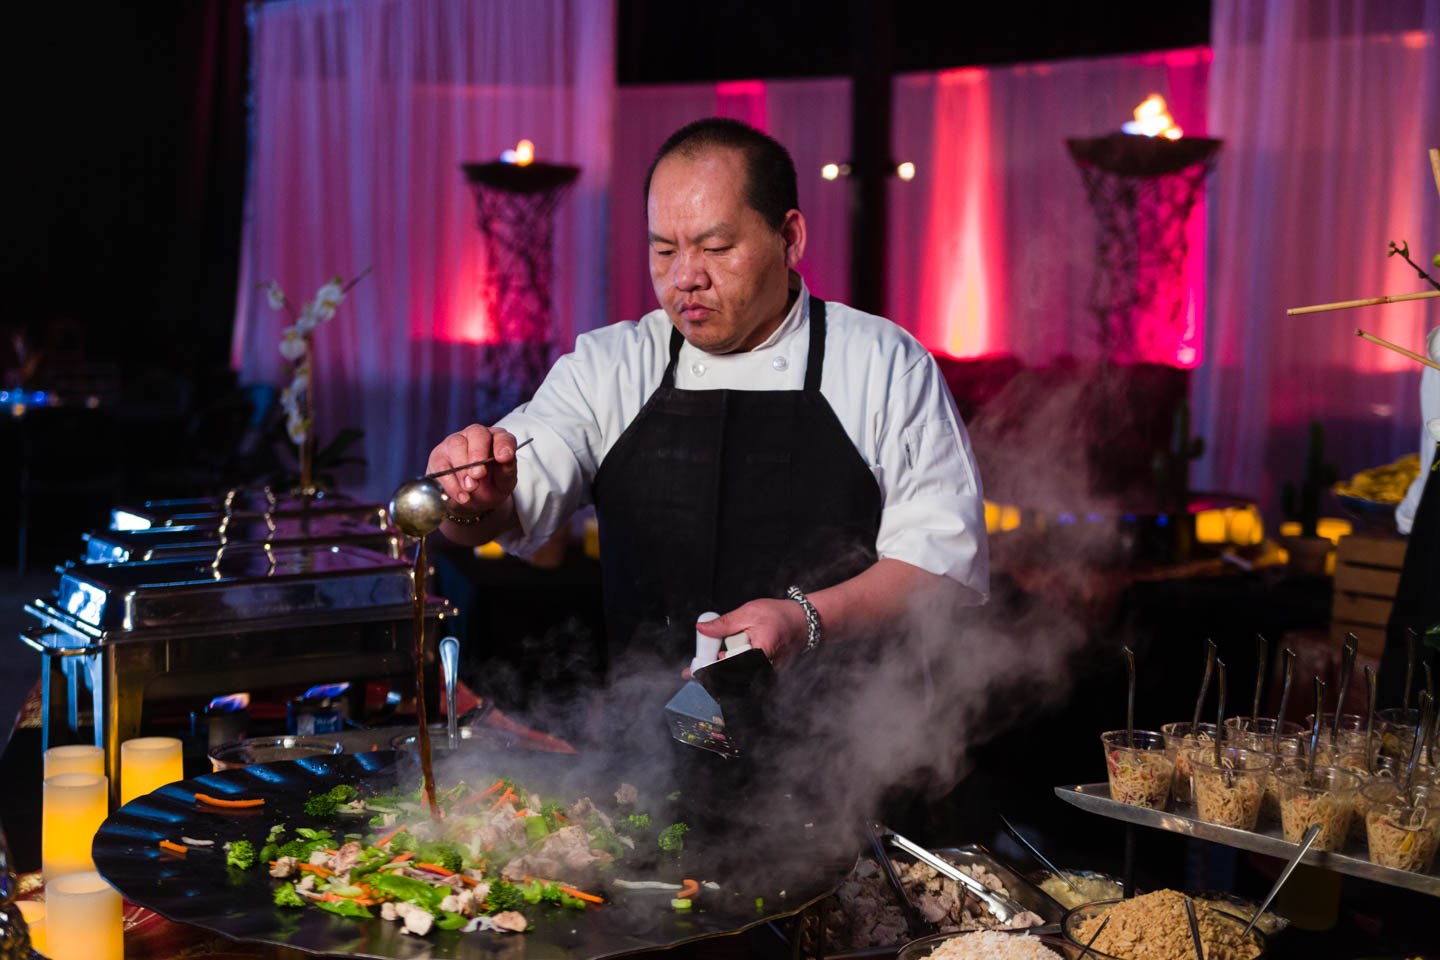 Chef creates stir fry for the party at The Complex